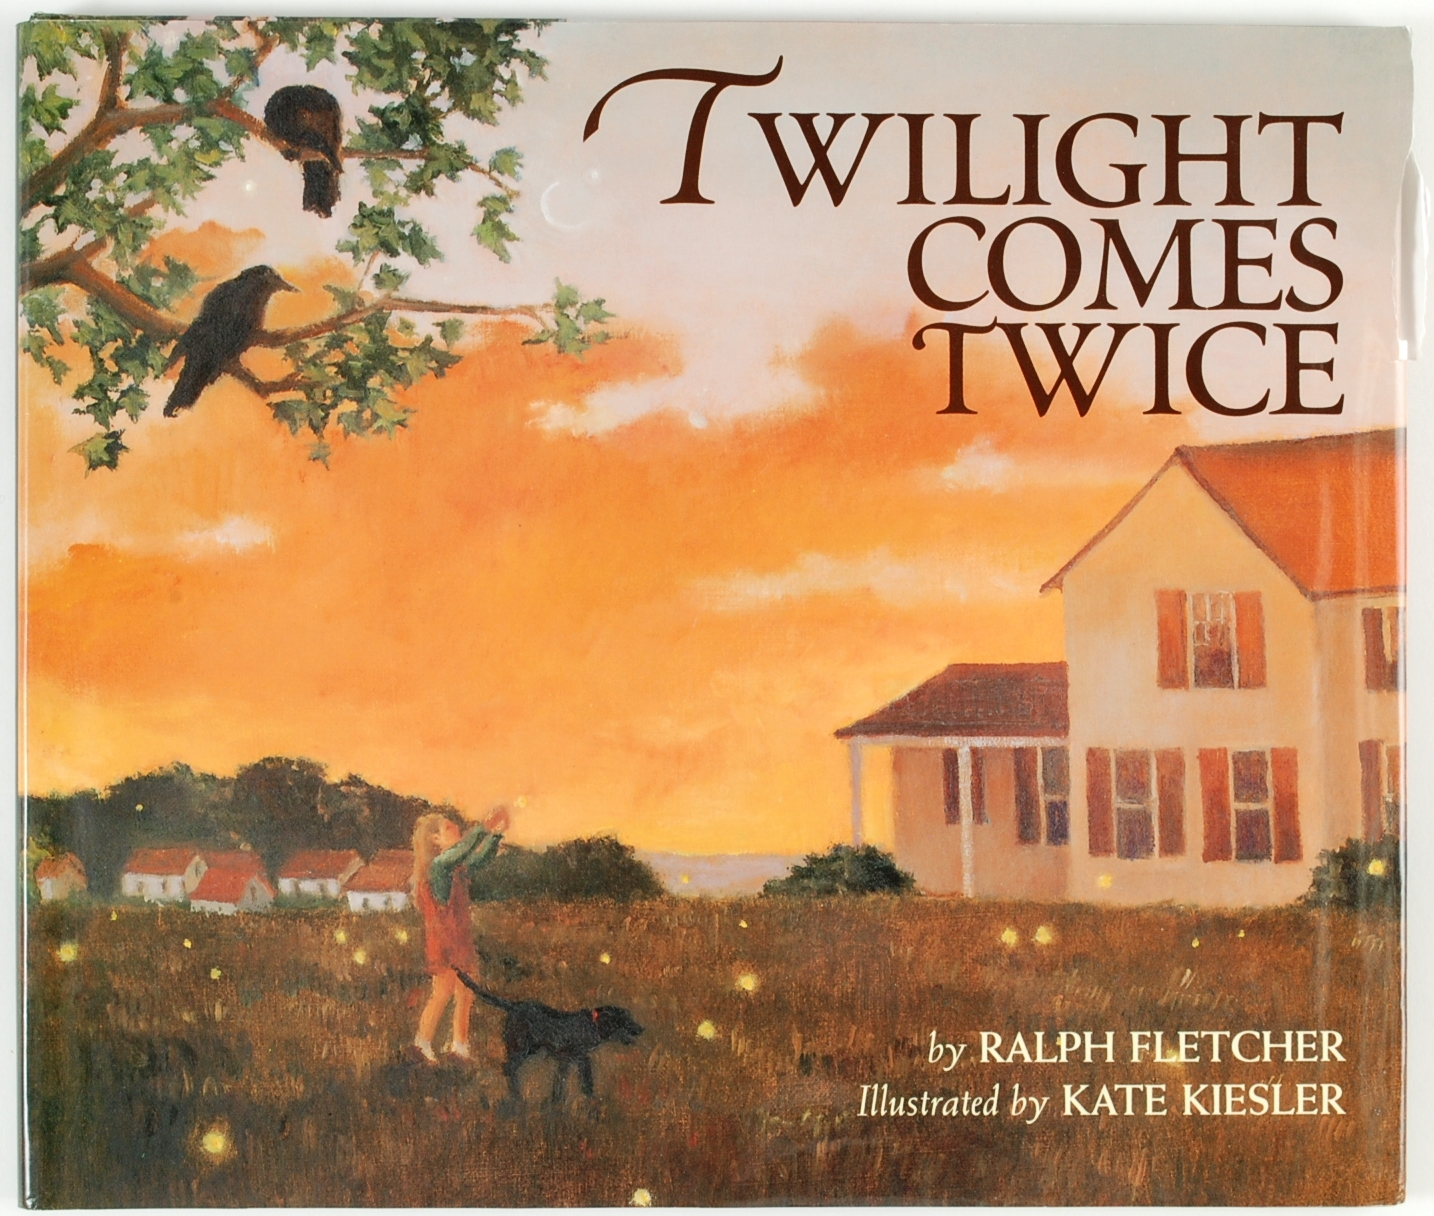 Twilight Comes Twice by Ralph Fletcher Kate Kiesler Illustrator 1997 Signed